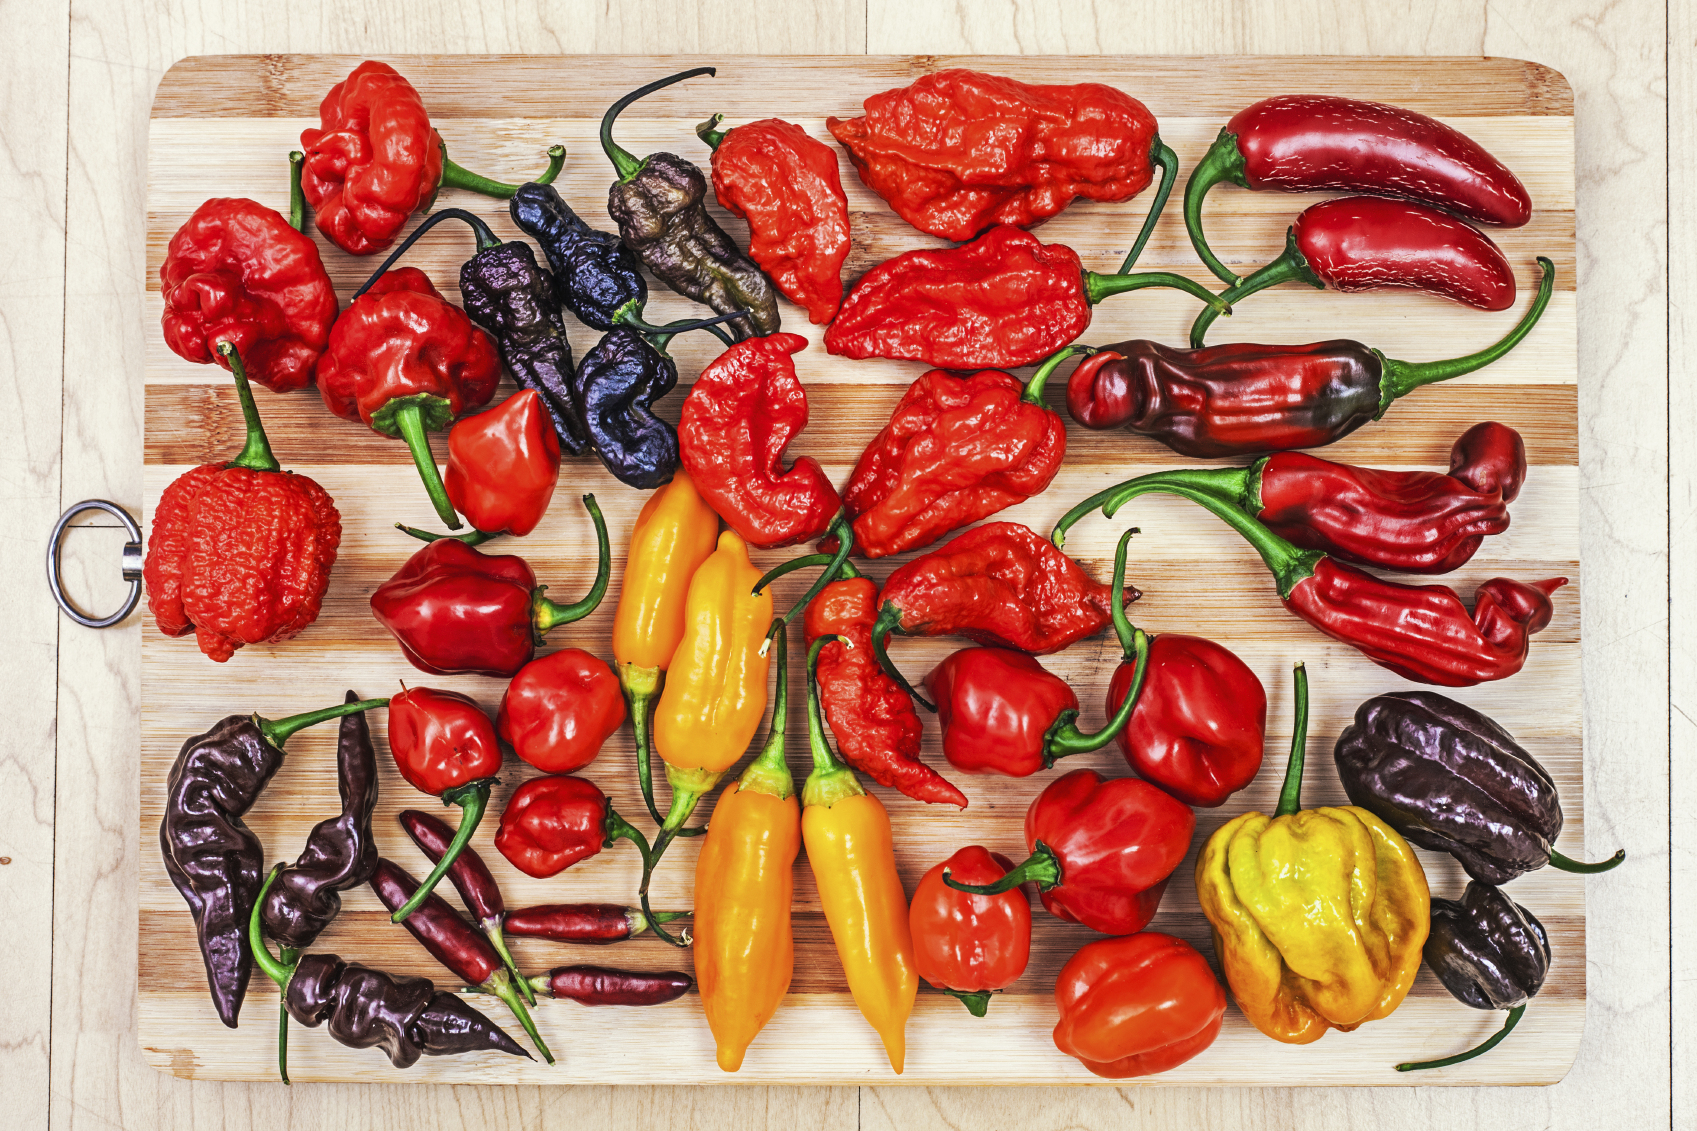 Hot Peppers for Pain, Infection, and Heart Health